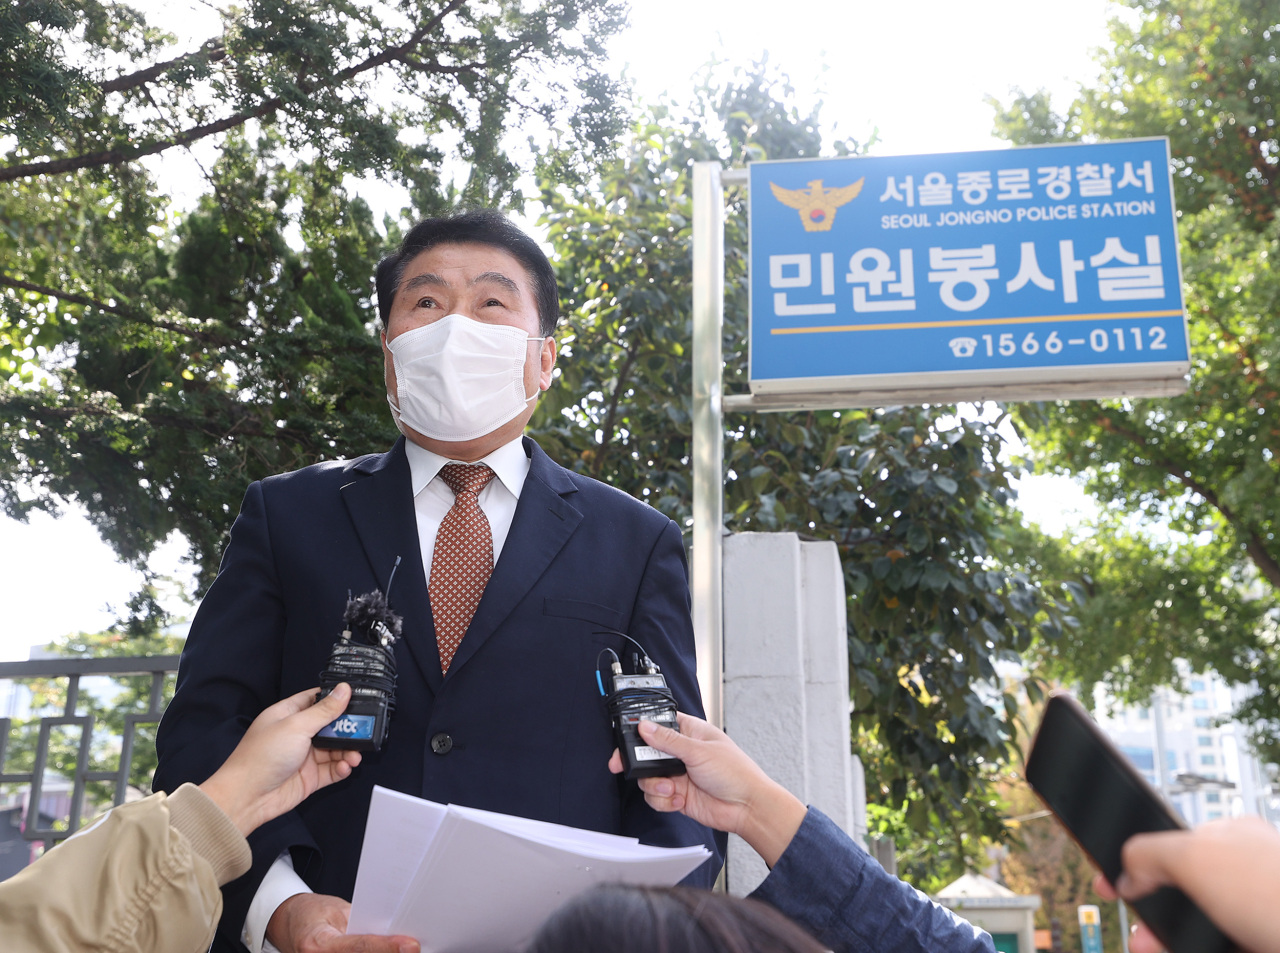 Choi In-sik, secretary general of a conservative civic group, speaks to reporters at the Jongno Police Station in Seoul on Tuesday before submitting its plans to hold outdoor rallies. (Yonhap)